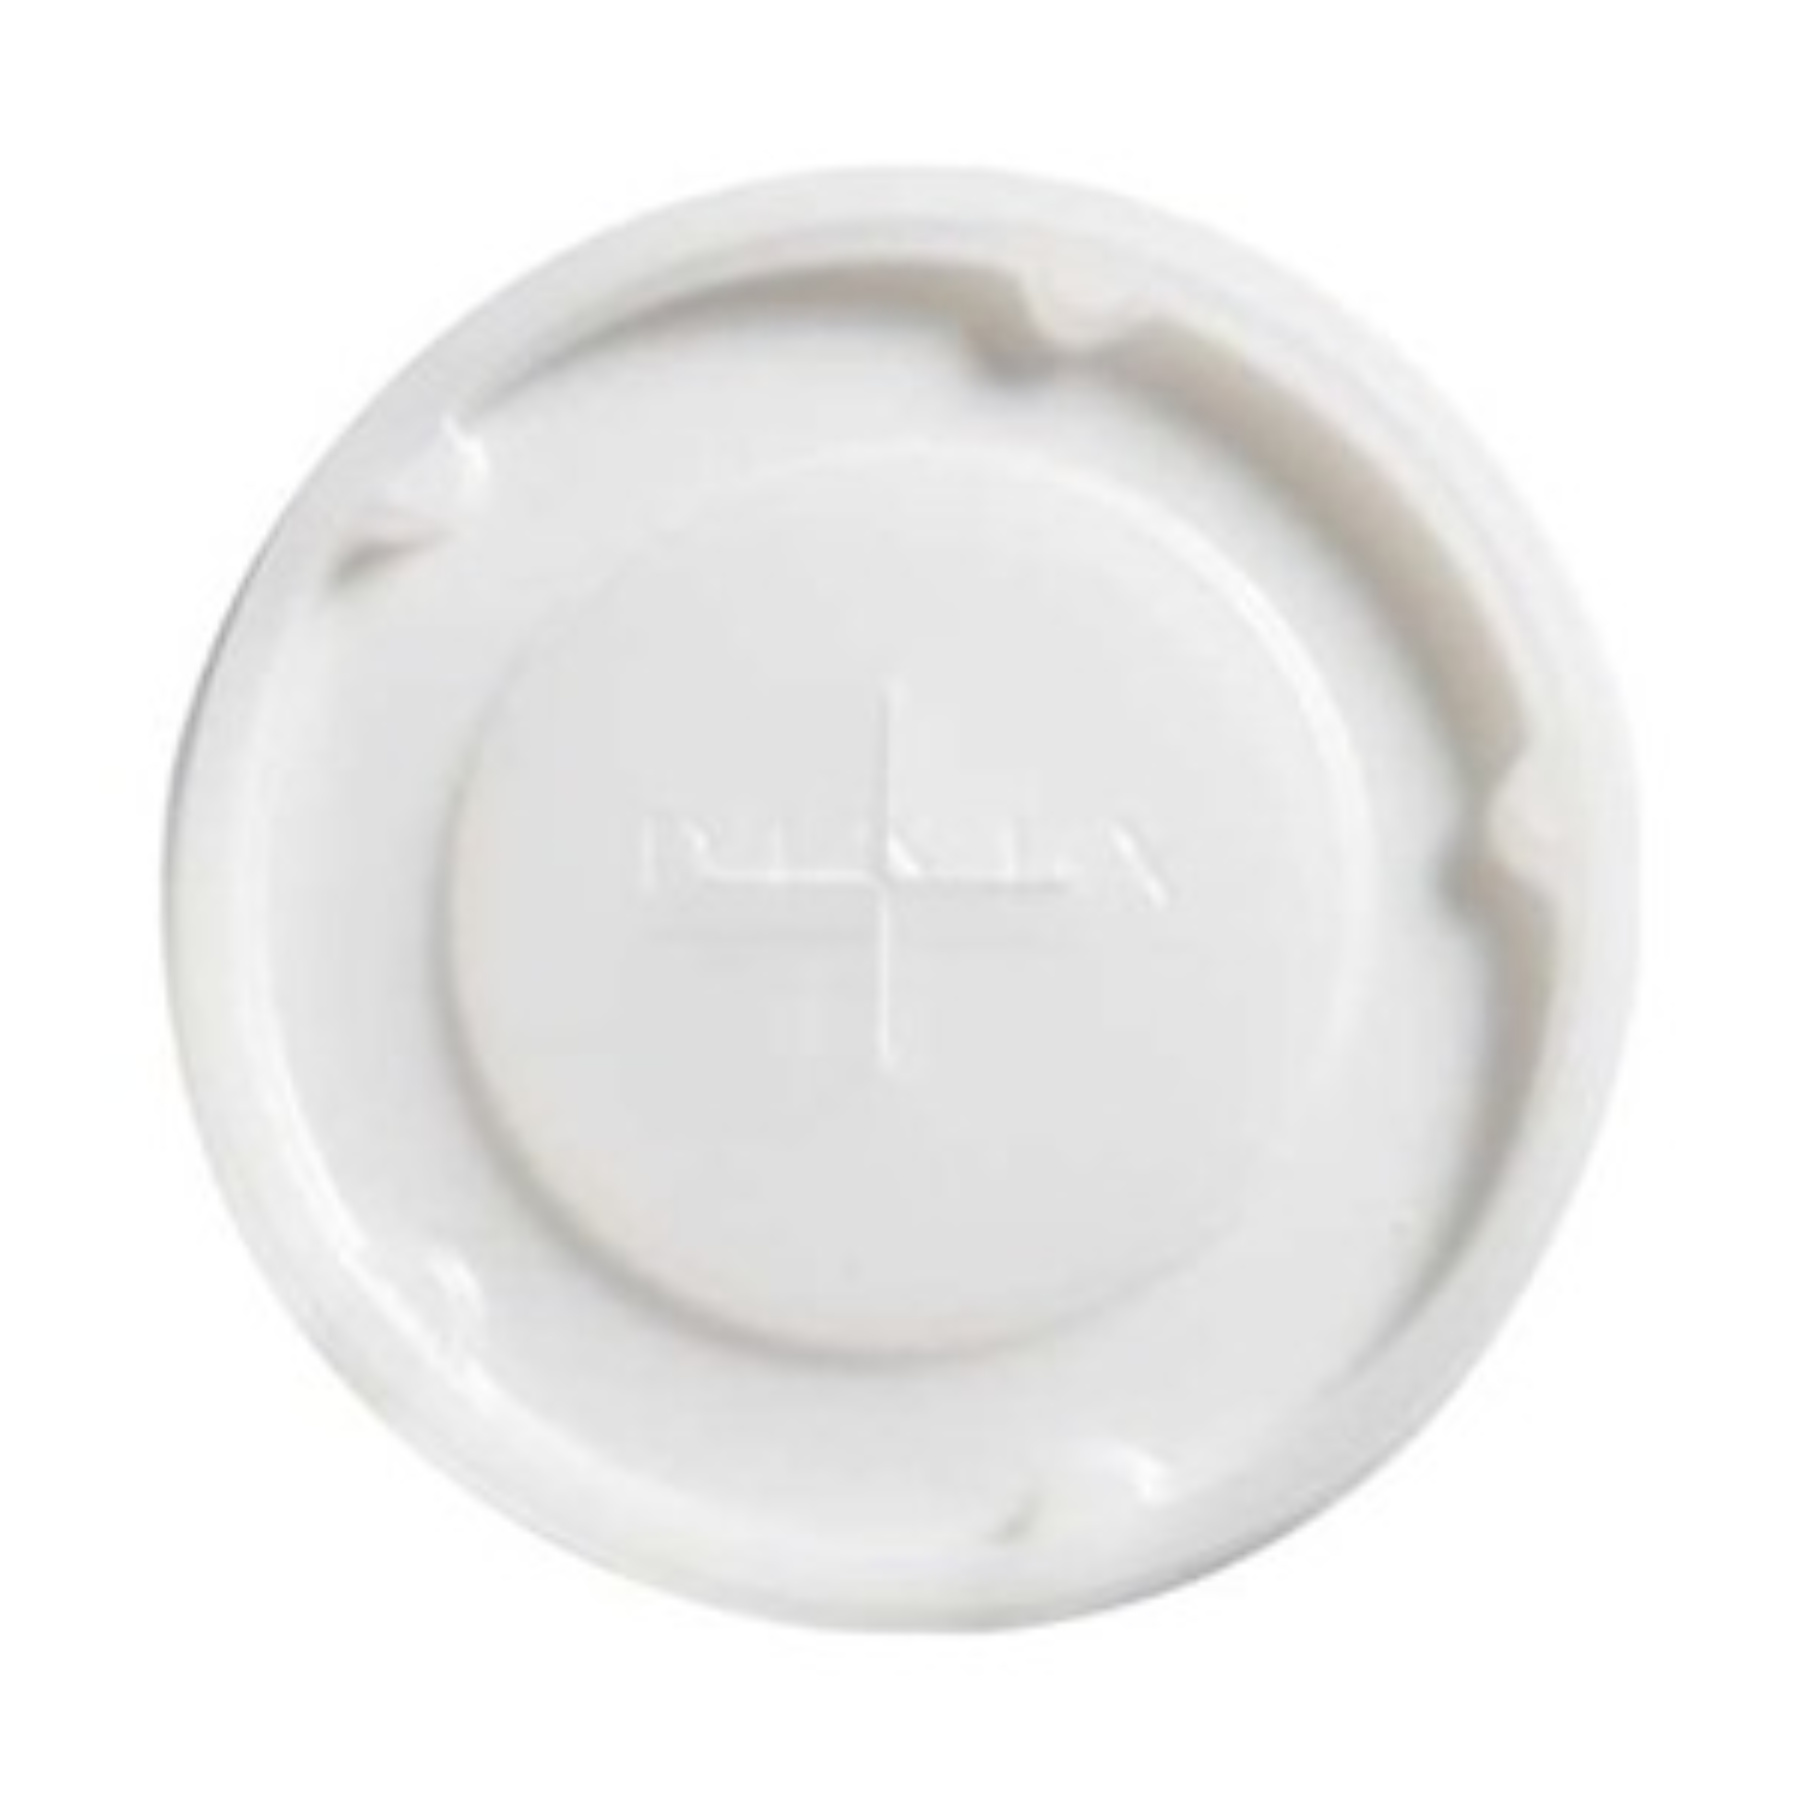 Disposable, Lid, 6 Oz, Pk1000 DX1196ST8714